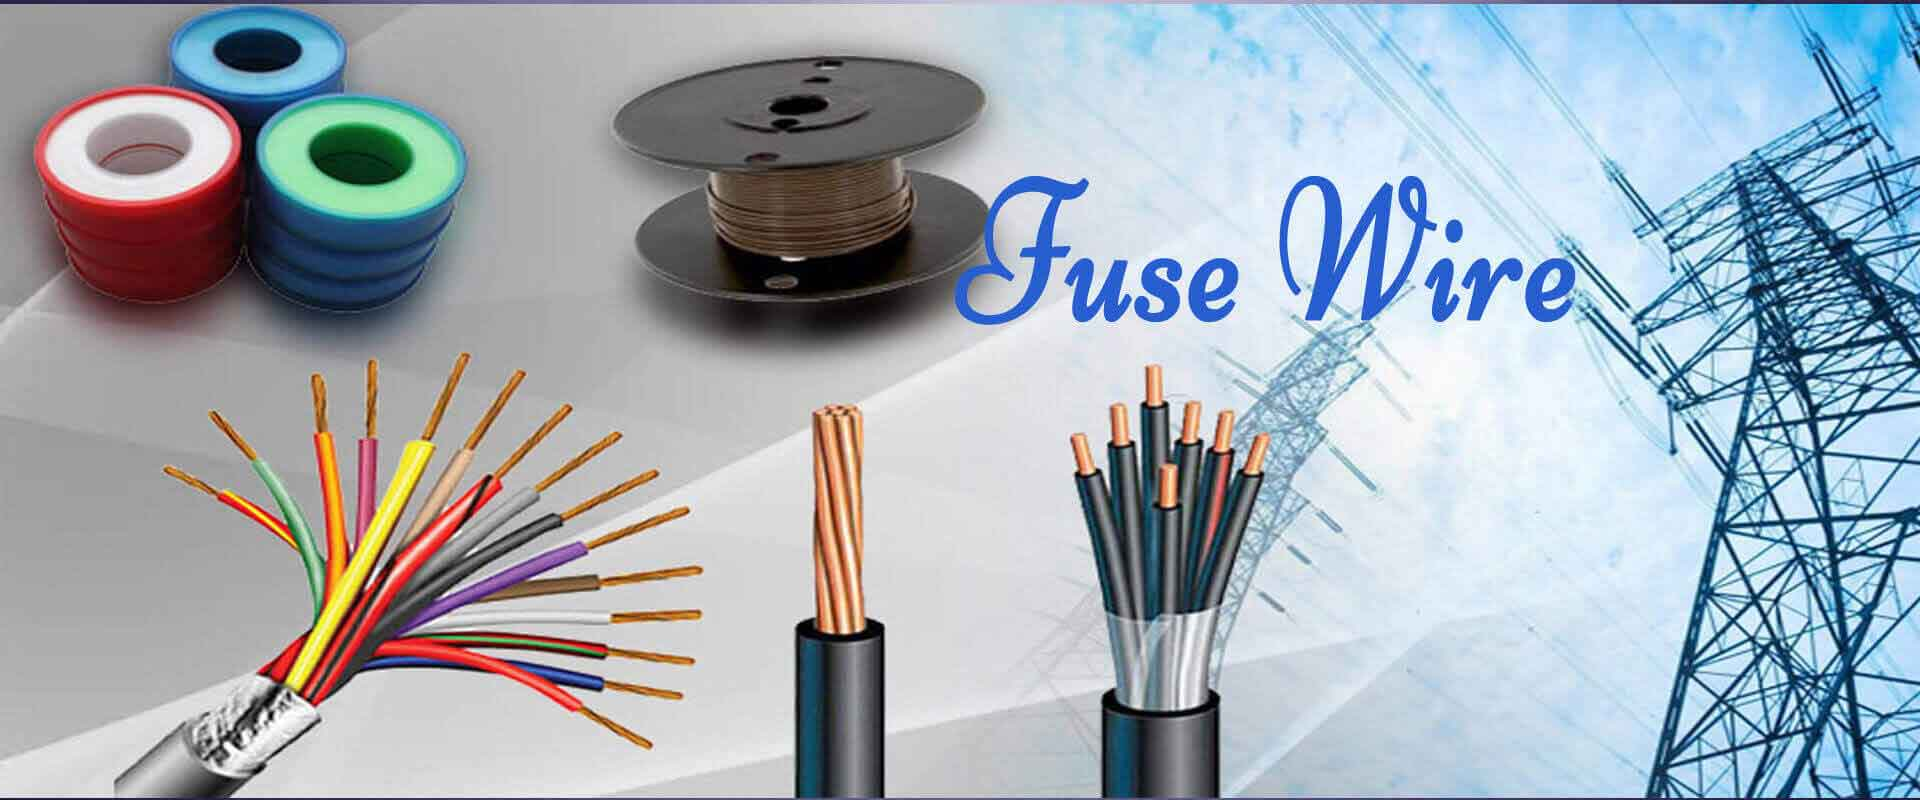 Silver Plated Copper Wire For Fuse In Iran